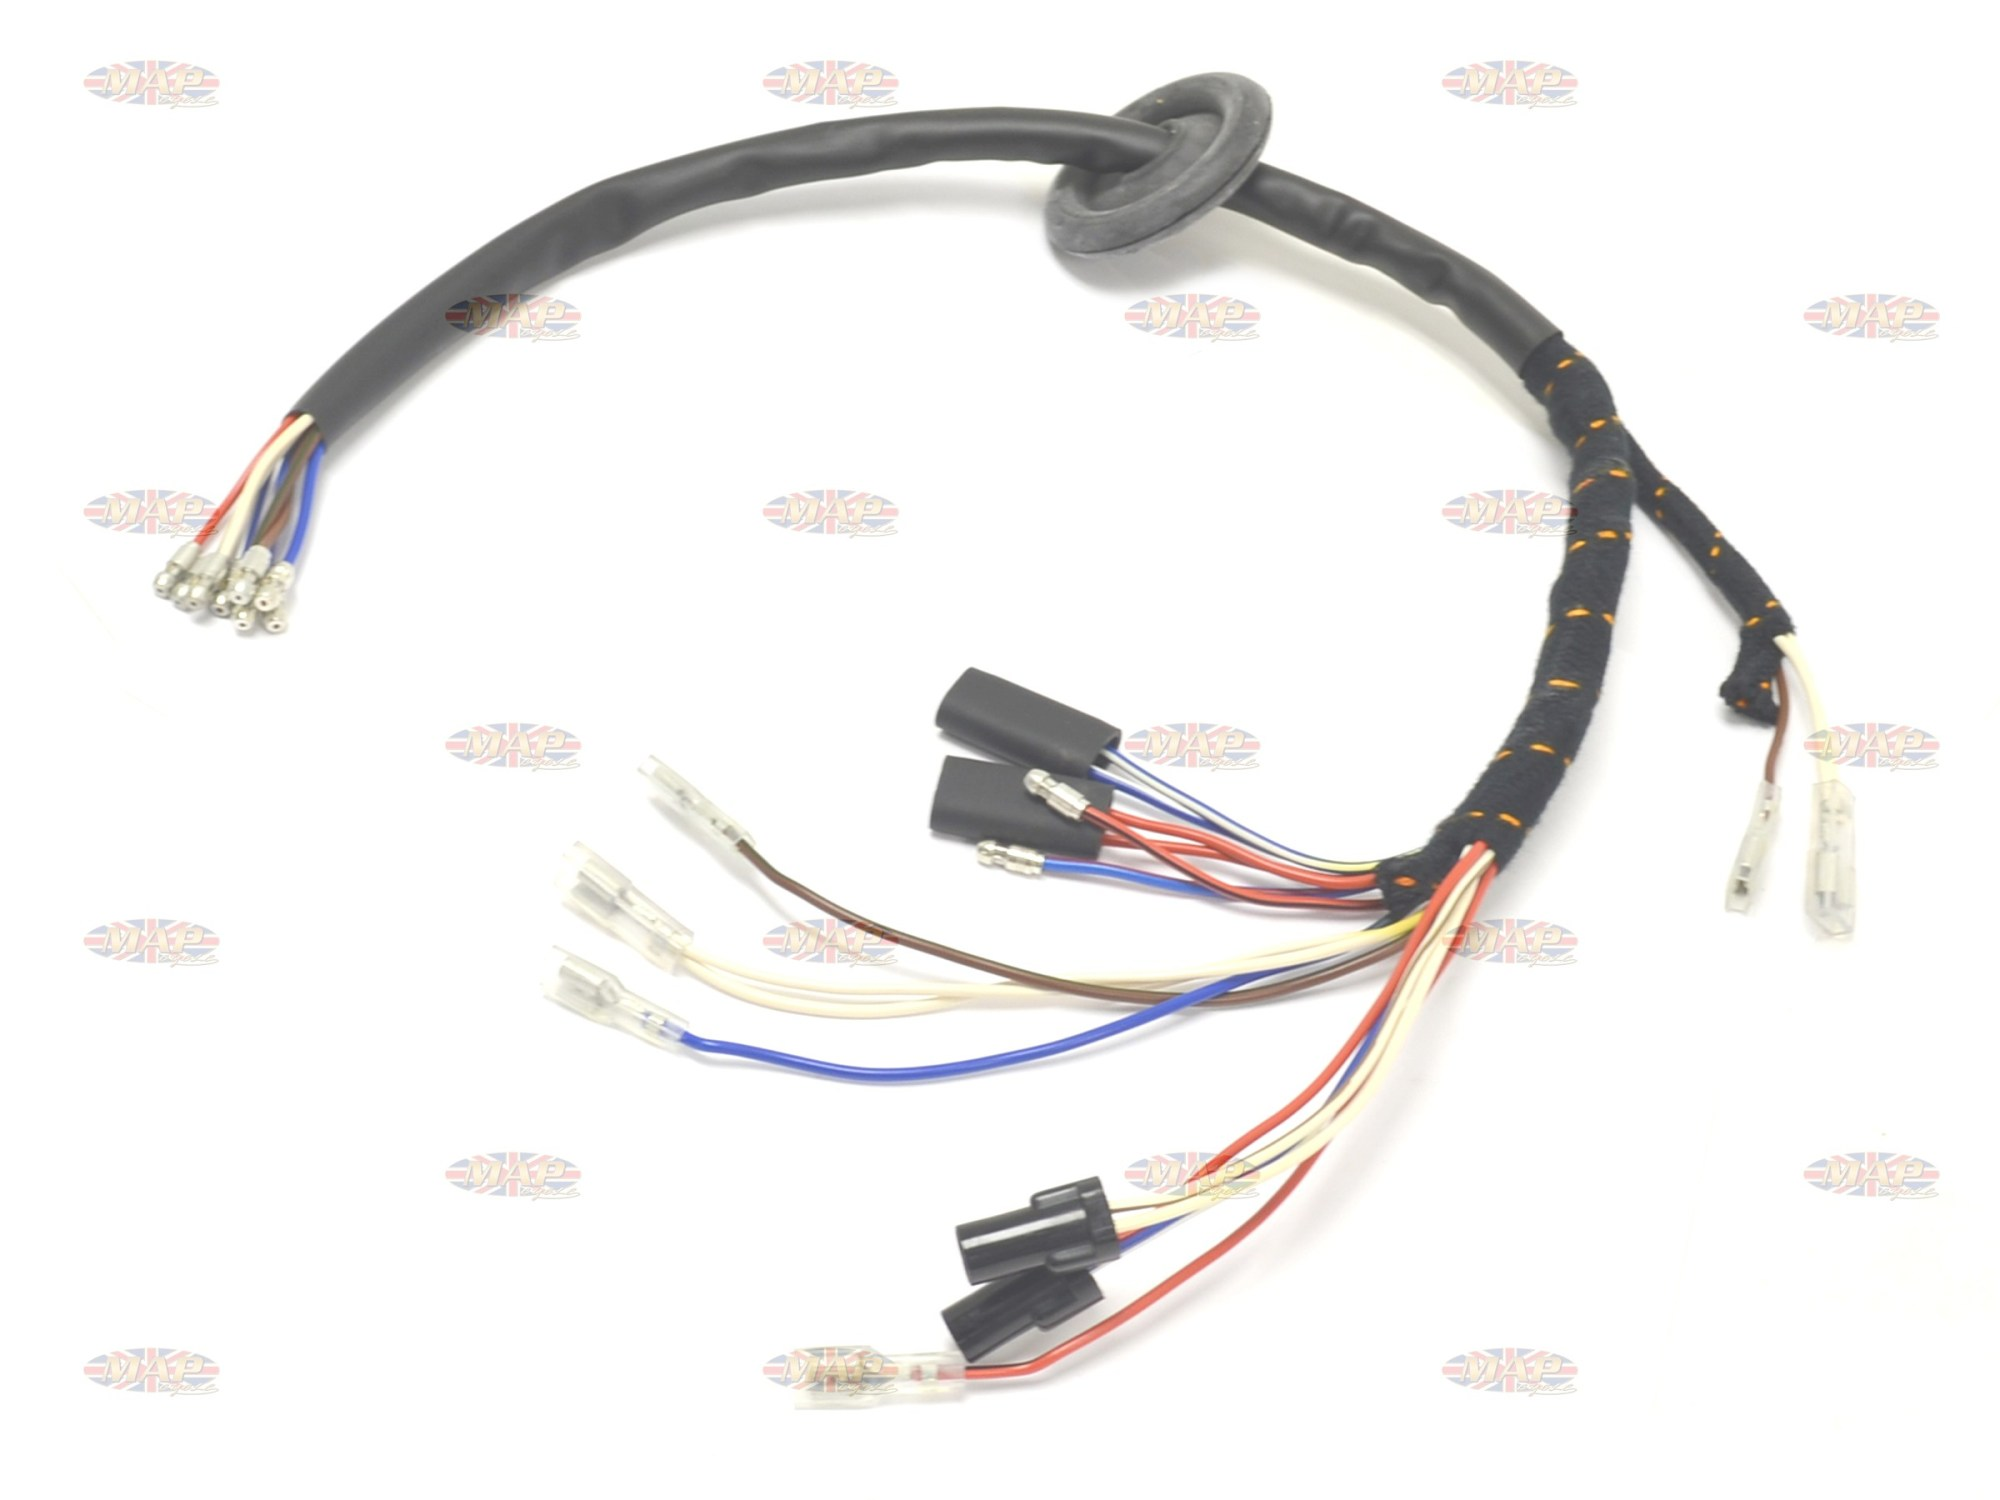 hight resolution of triumph 1973 x75 hurricane english made headlight wiring harness hurricane wiring harness